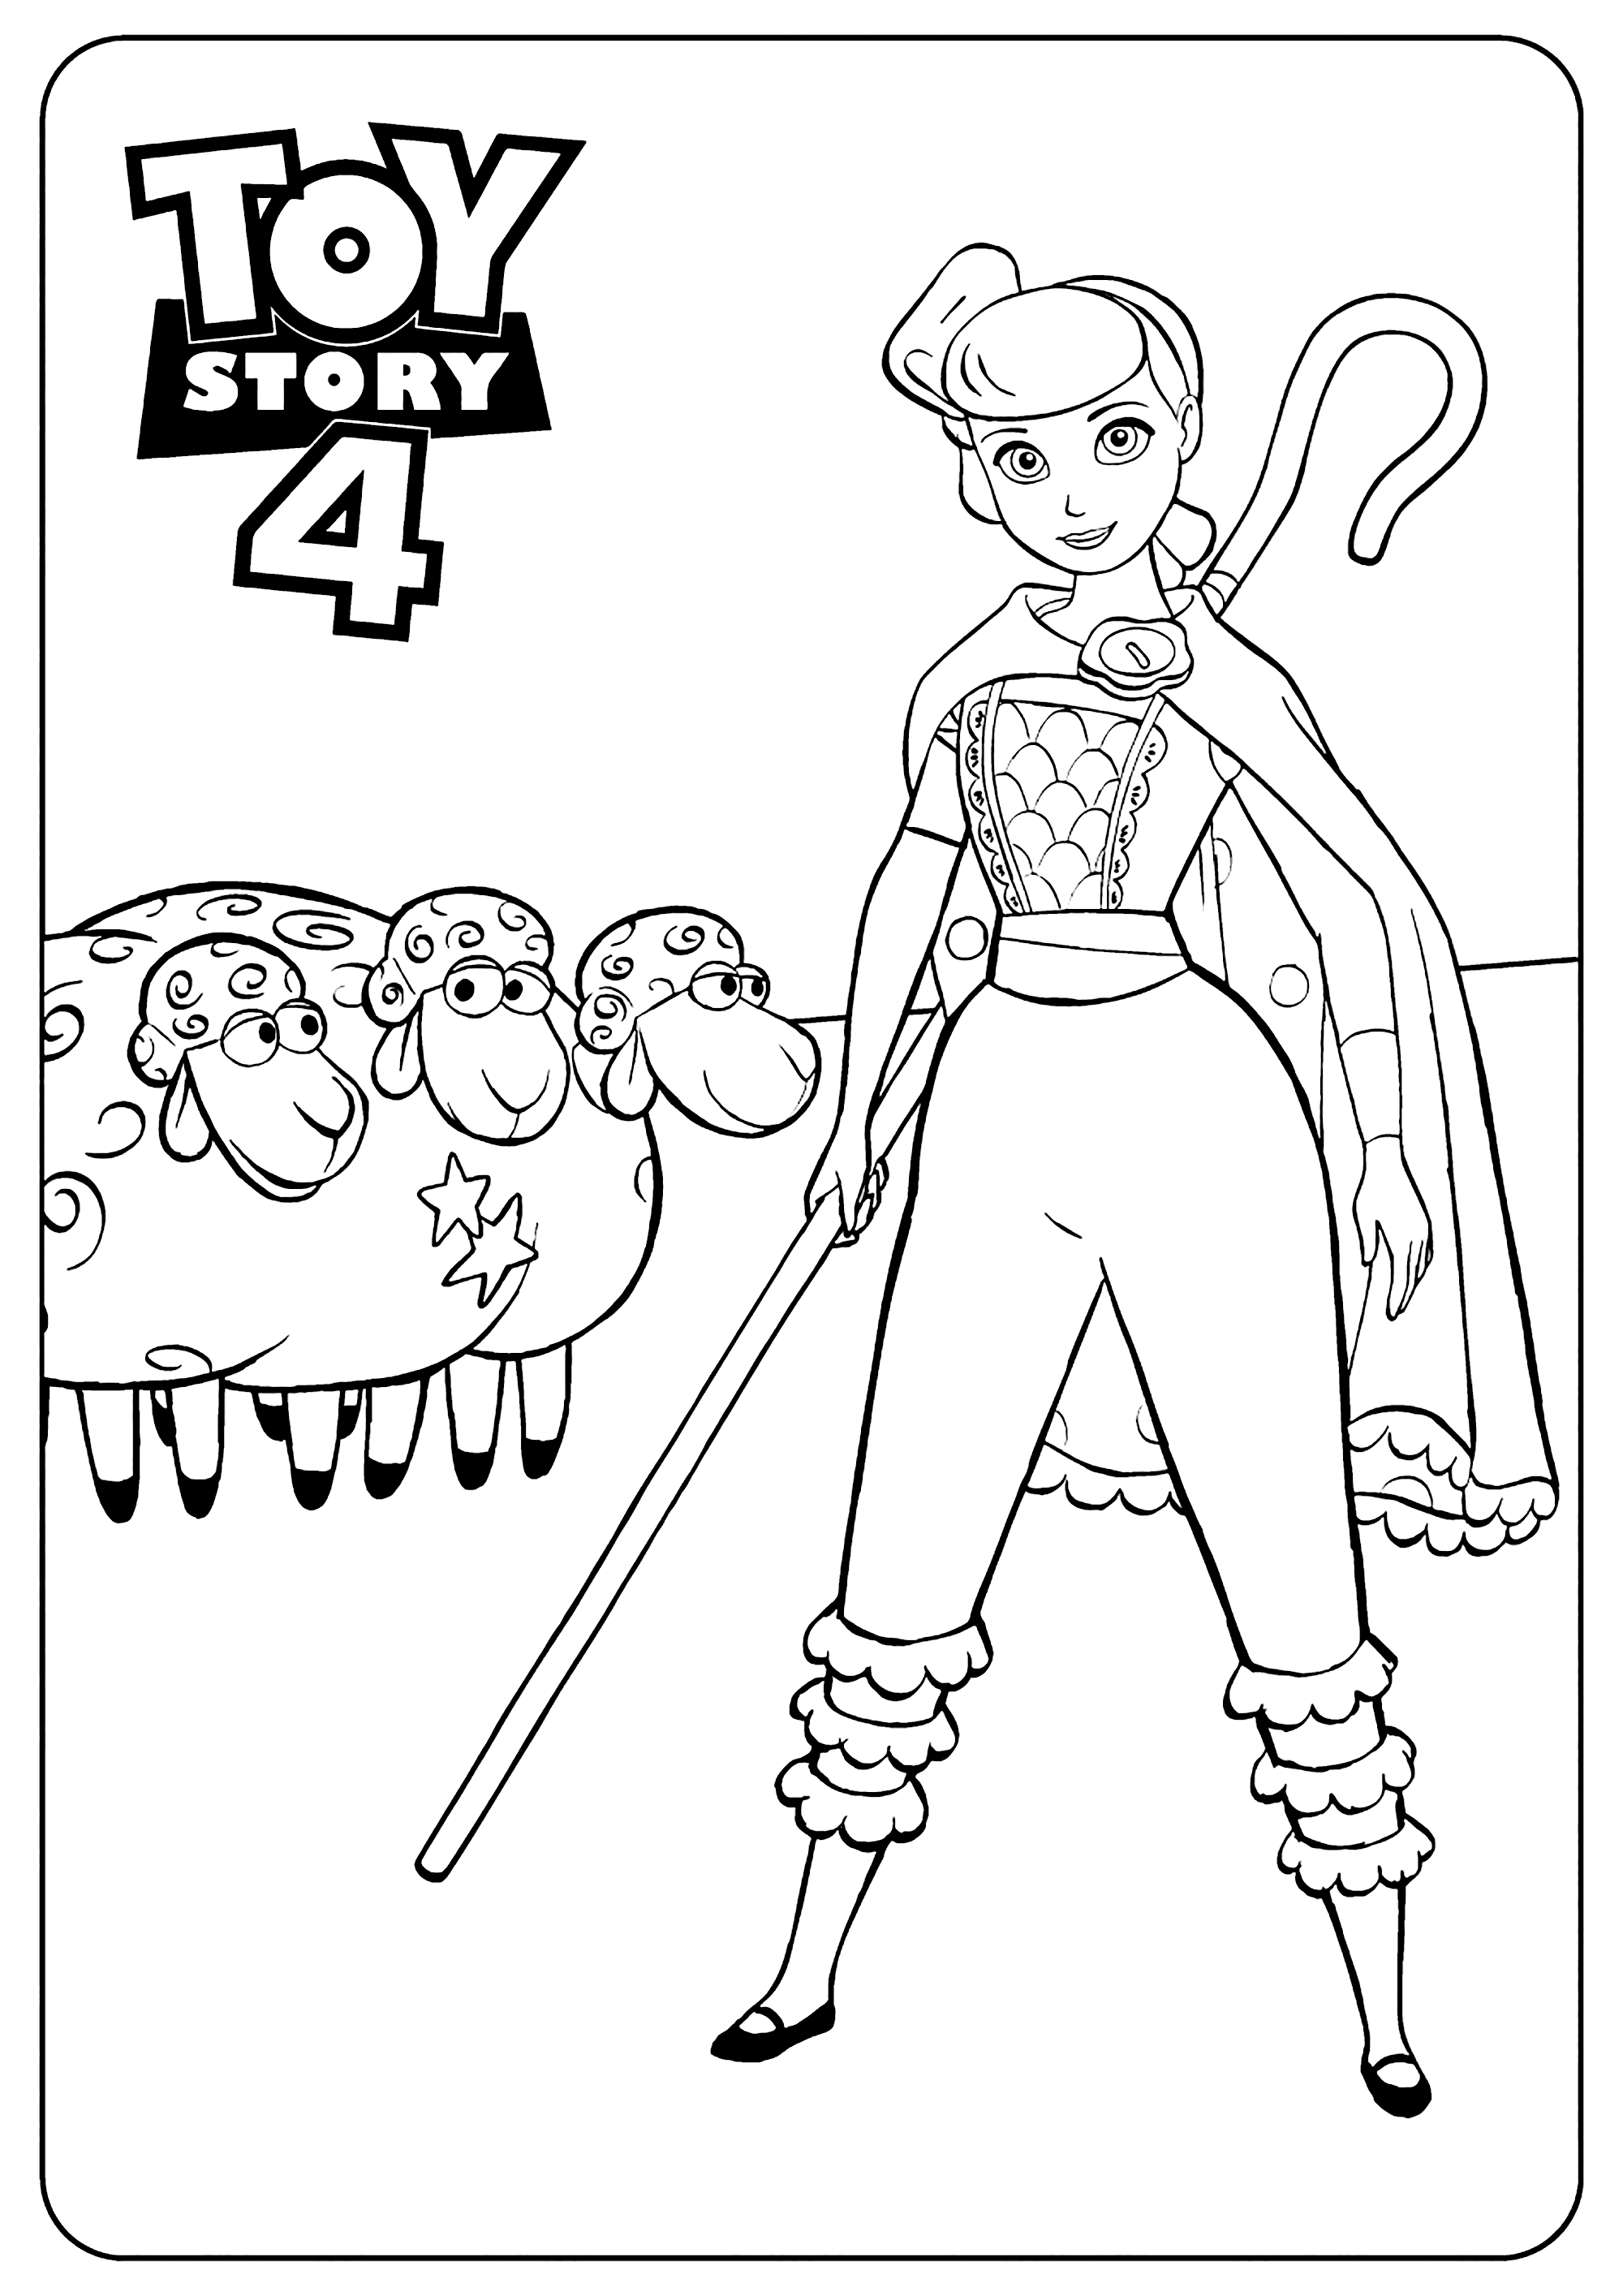 Bo Peep Coloring Pages Best Coloring Pages For Kids Toy Story Coloring Pages Disney Coloring Pages Toy Story Printables